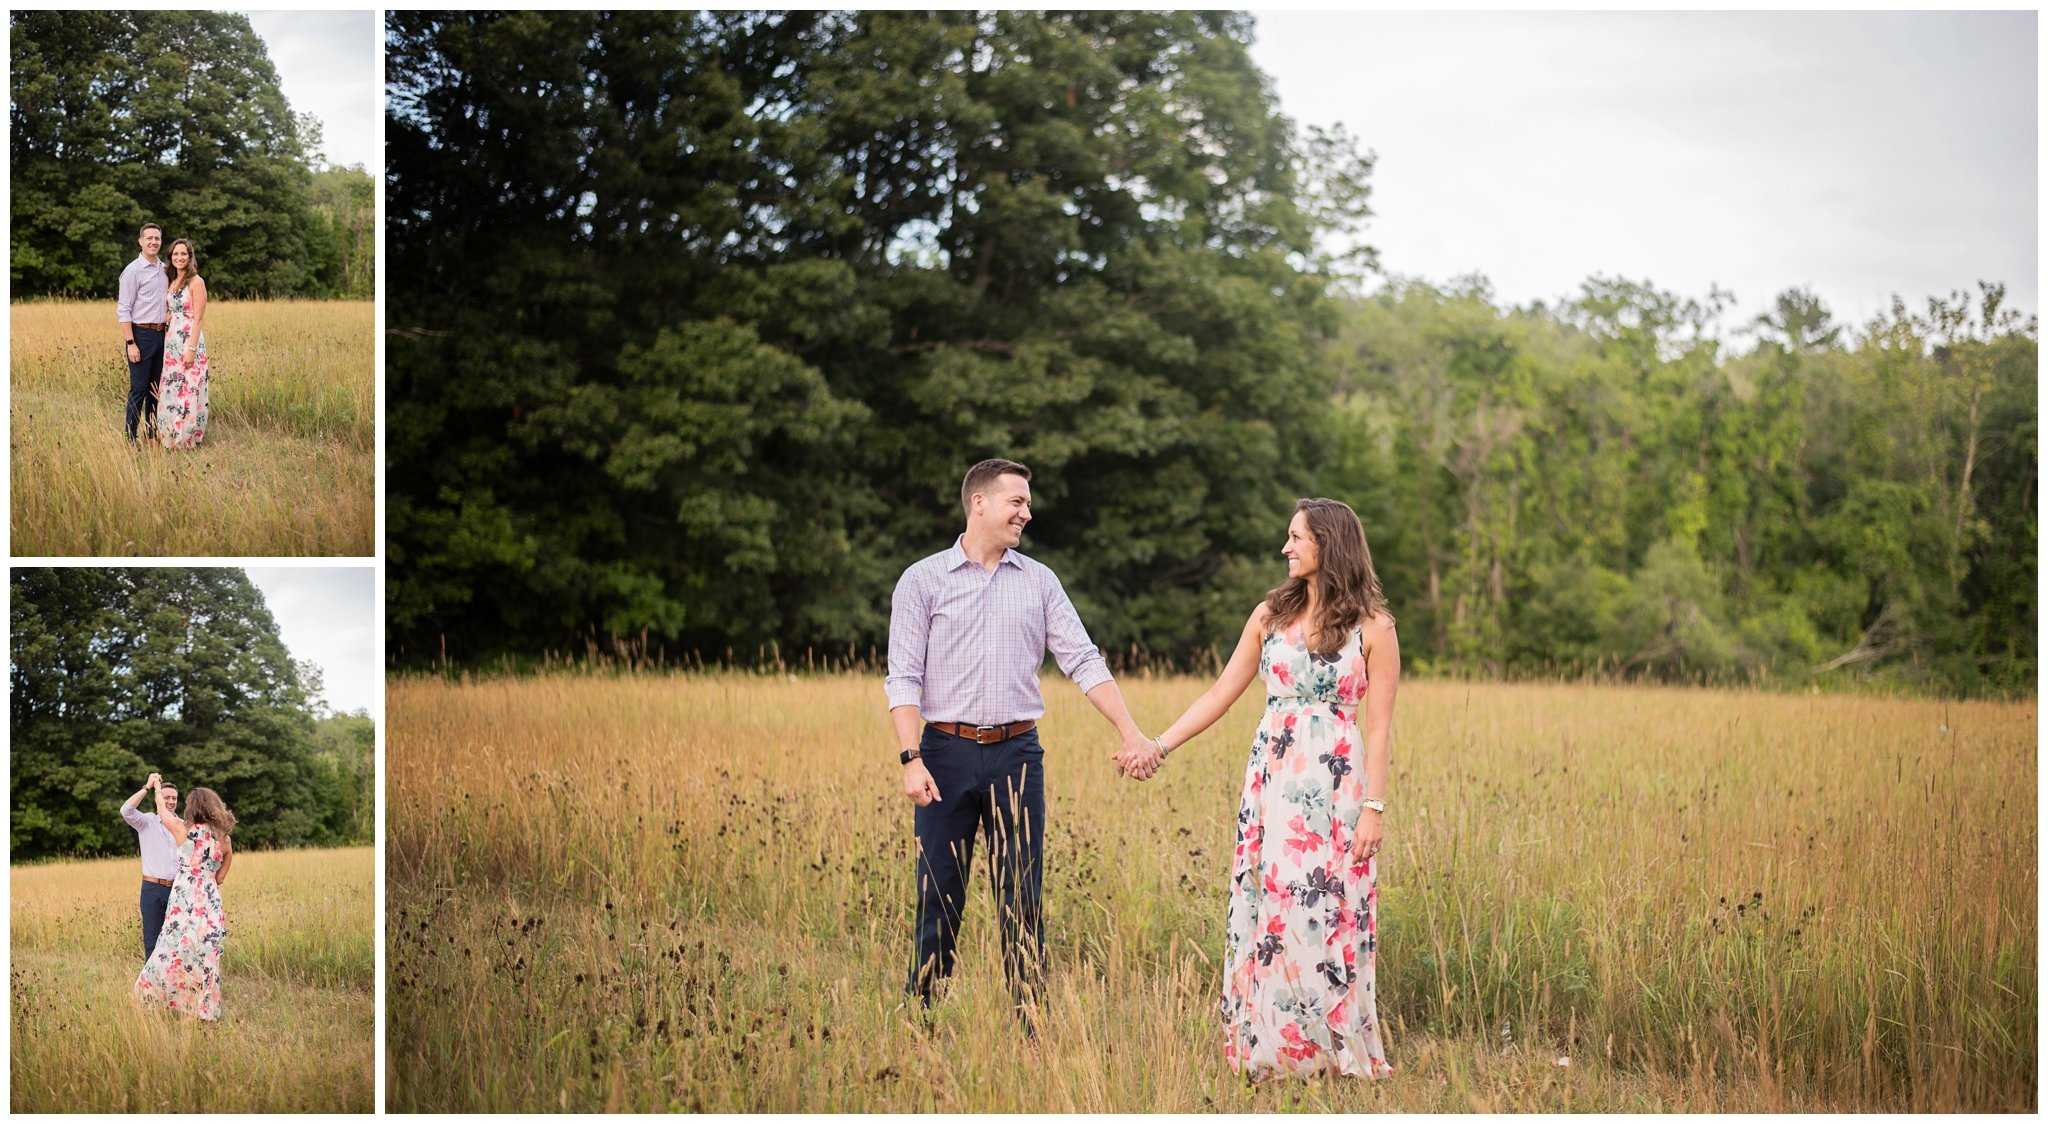 outdoor family photo session near Newburyport, MA